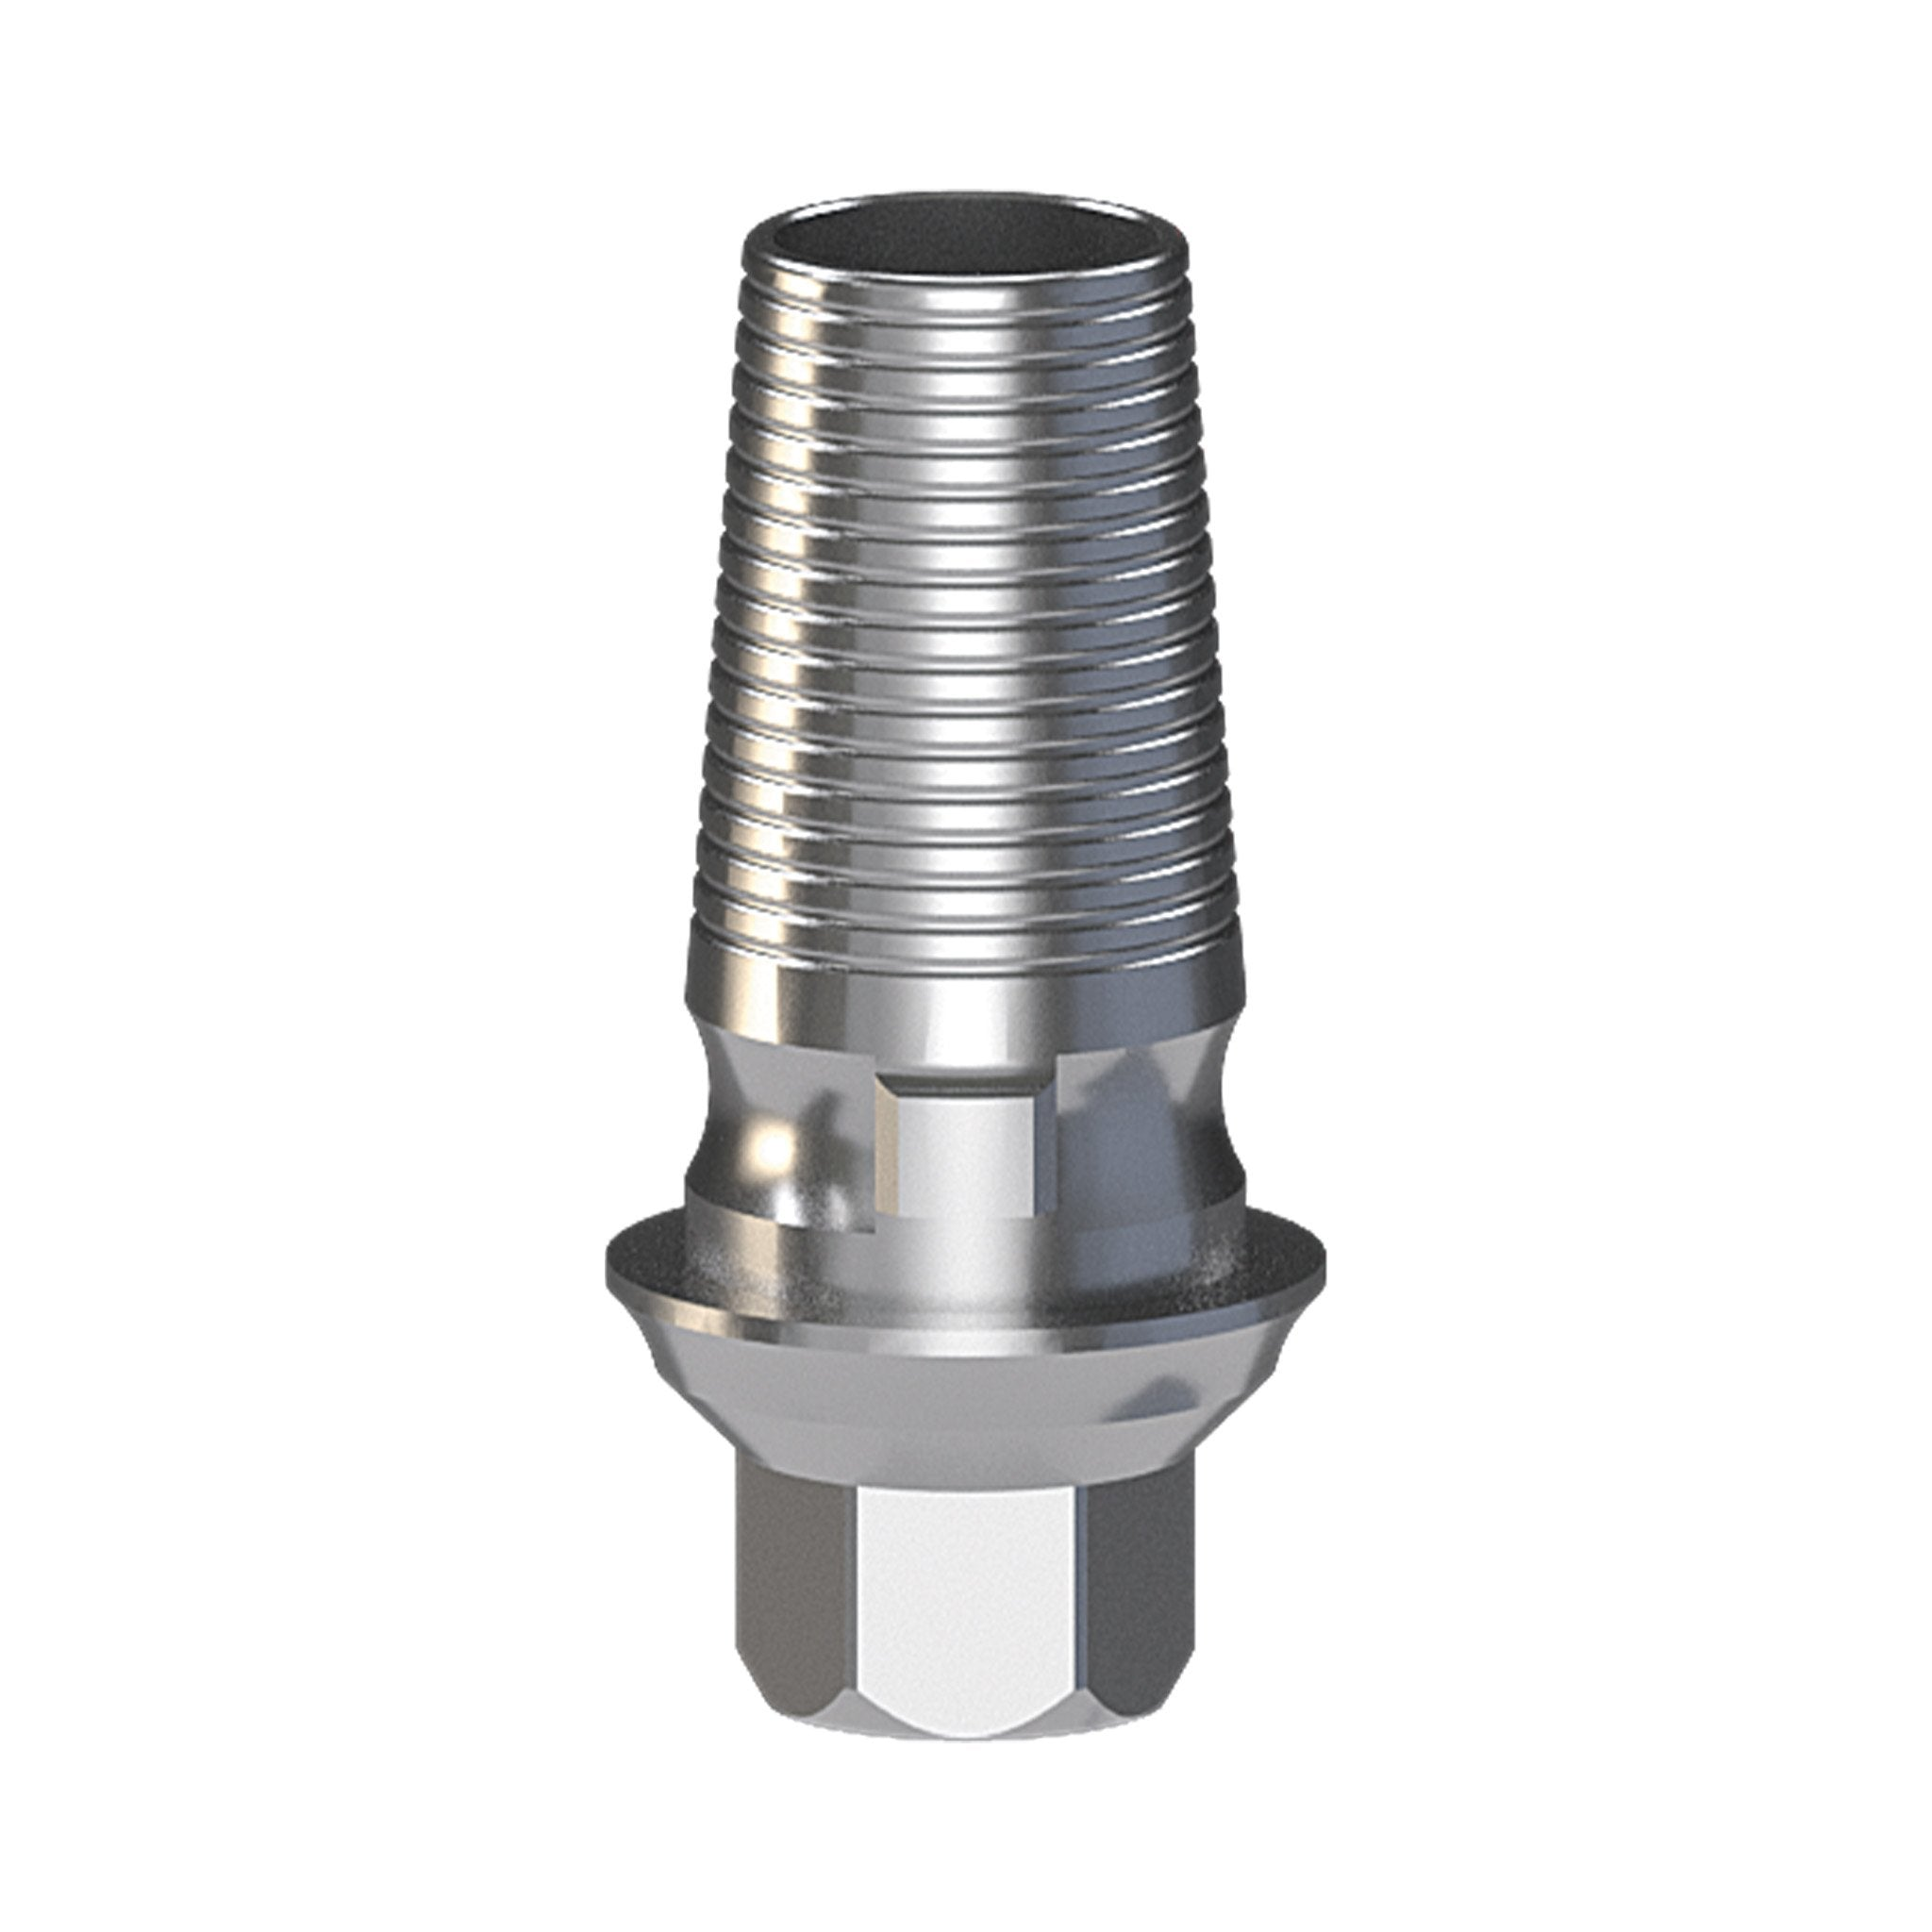 Int Hex SP Ti Base Round Eng 0.5 cuff, 6H | K3